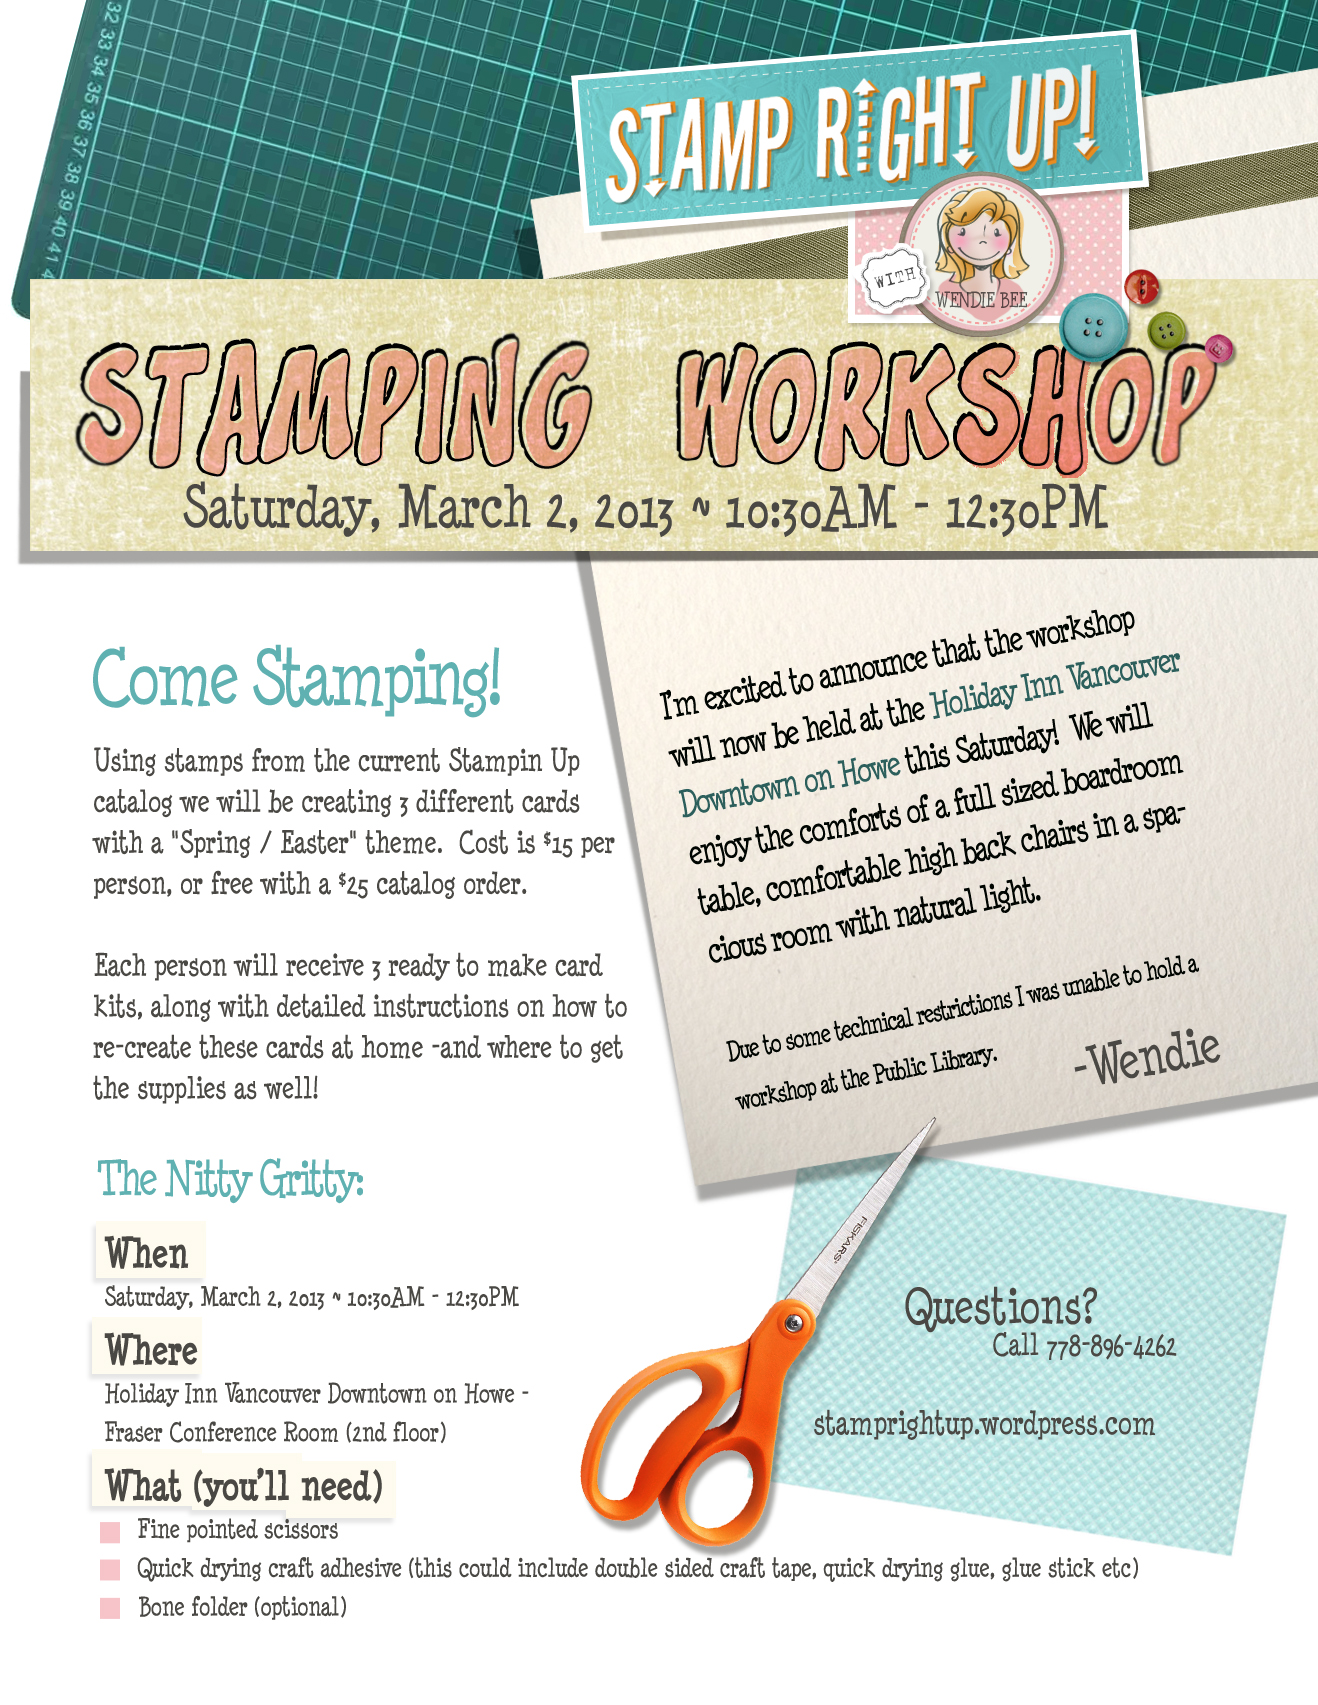 Stamprightup Work Shop – March 2nd Vancouver,BC